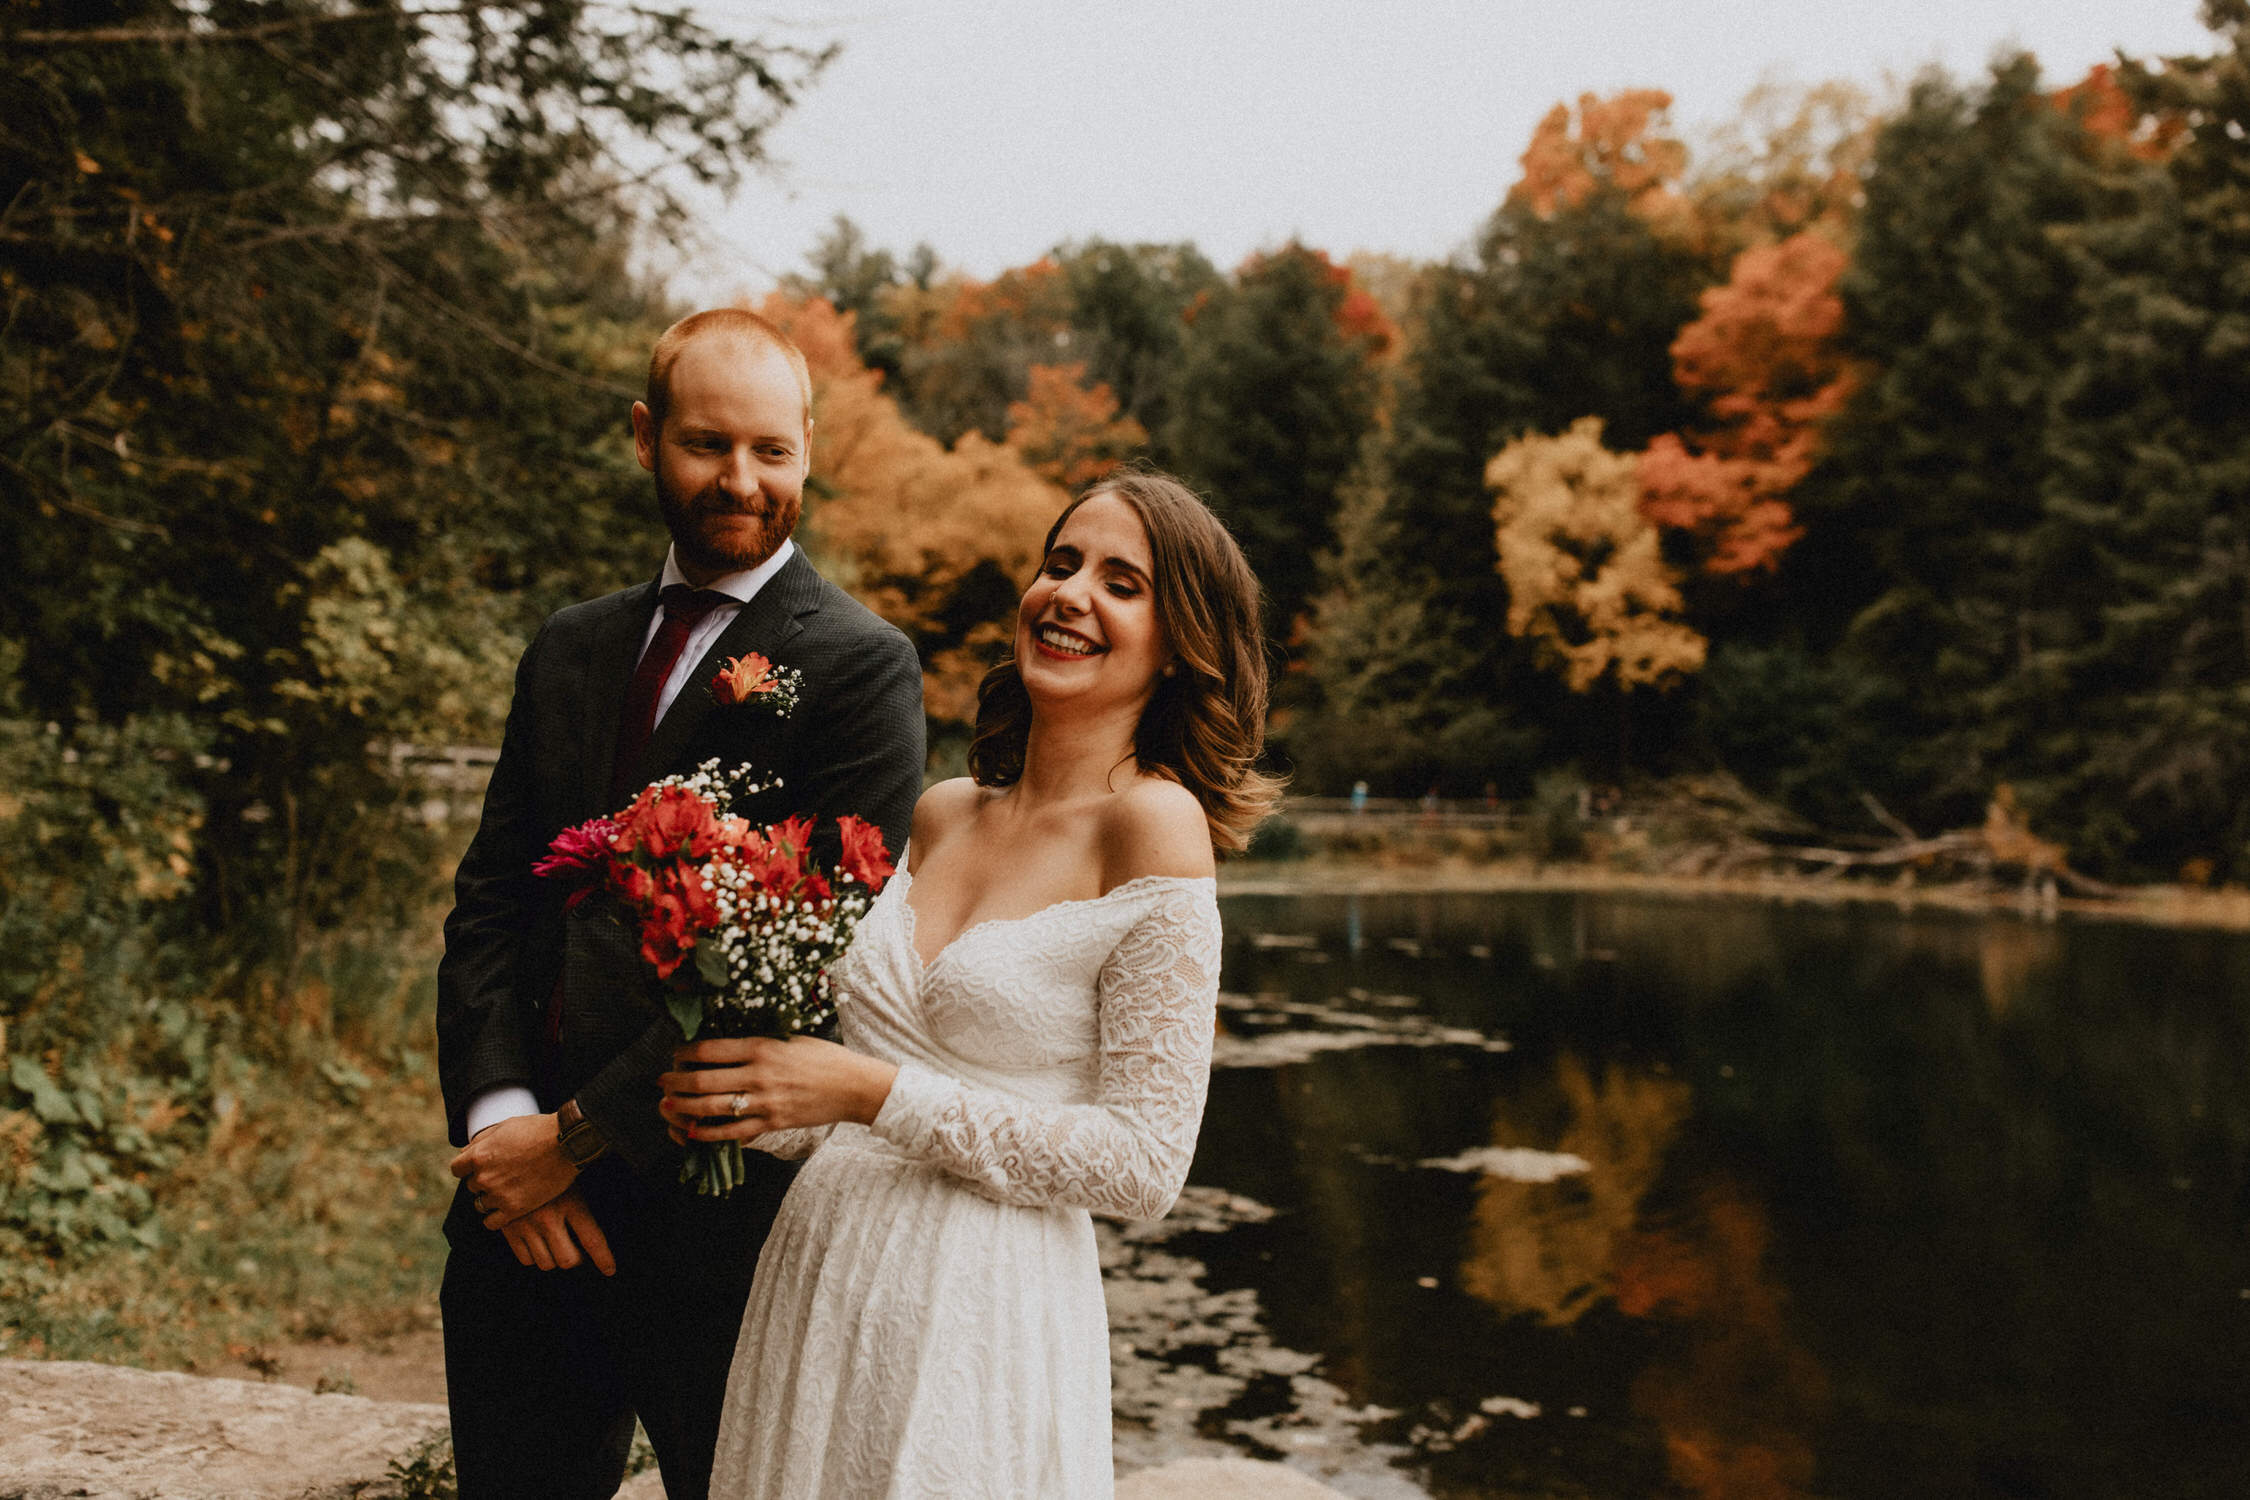 Bride laughs during fall wedding ceremony near pond - Huron Natural Area Micro Wedding Kitchener, Ontario